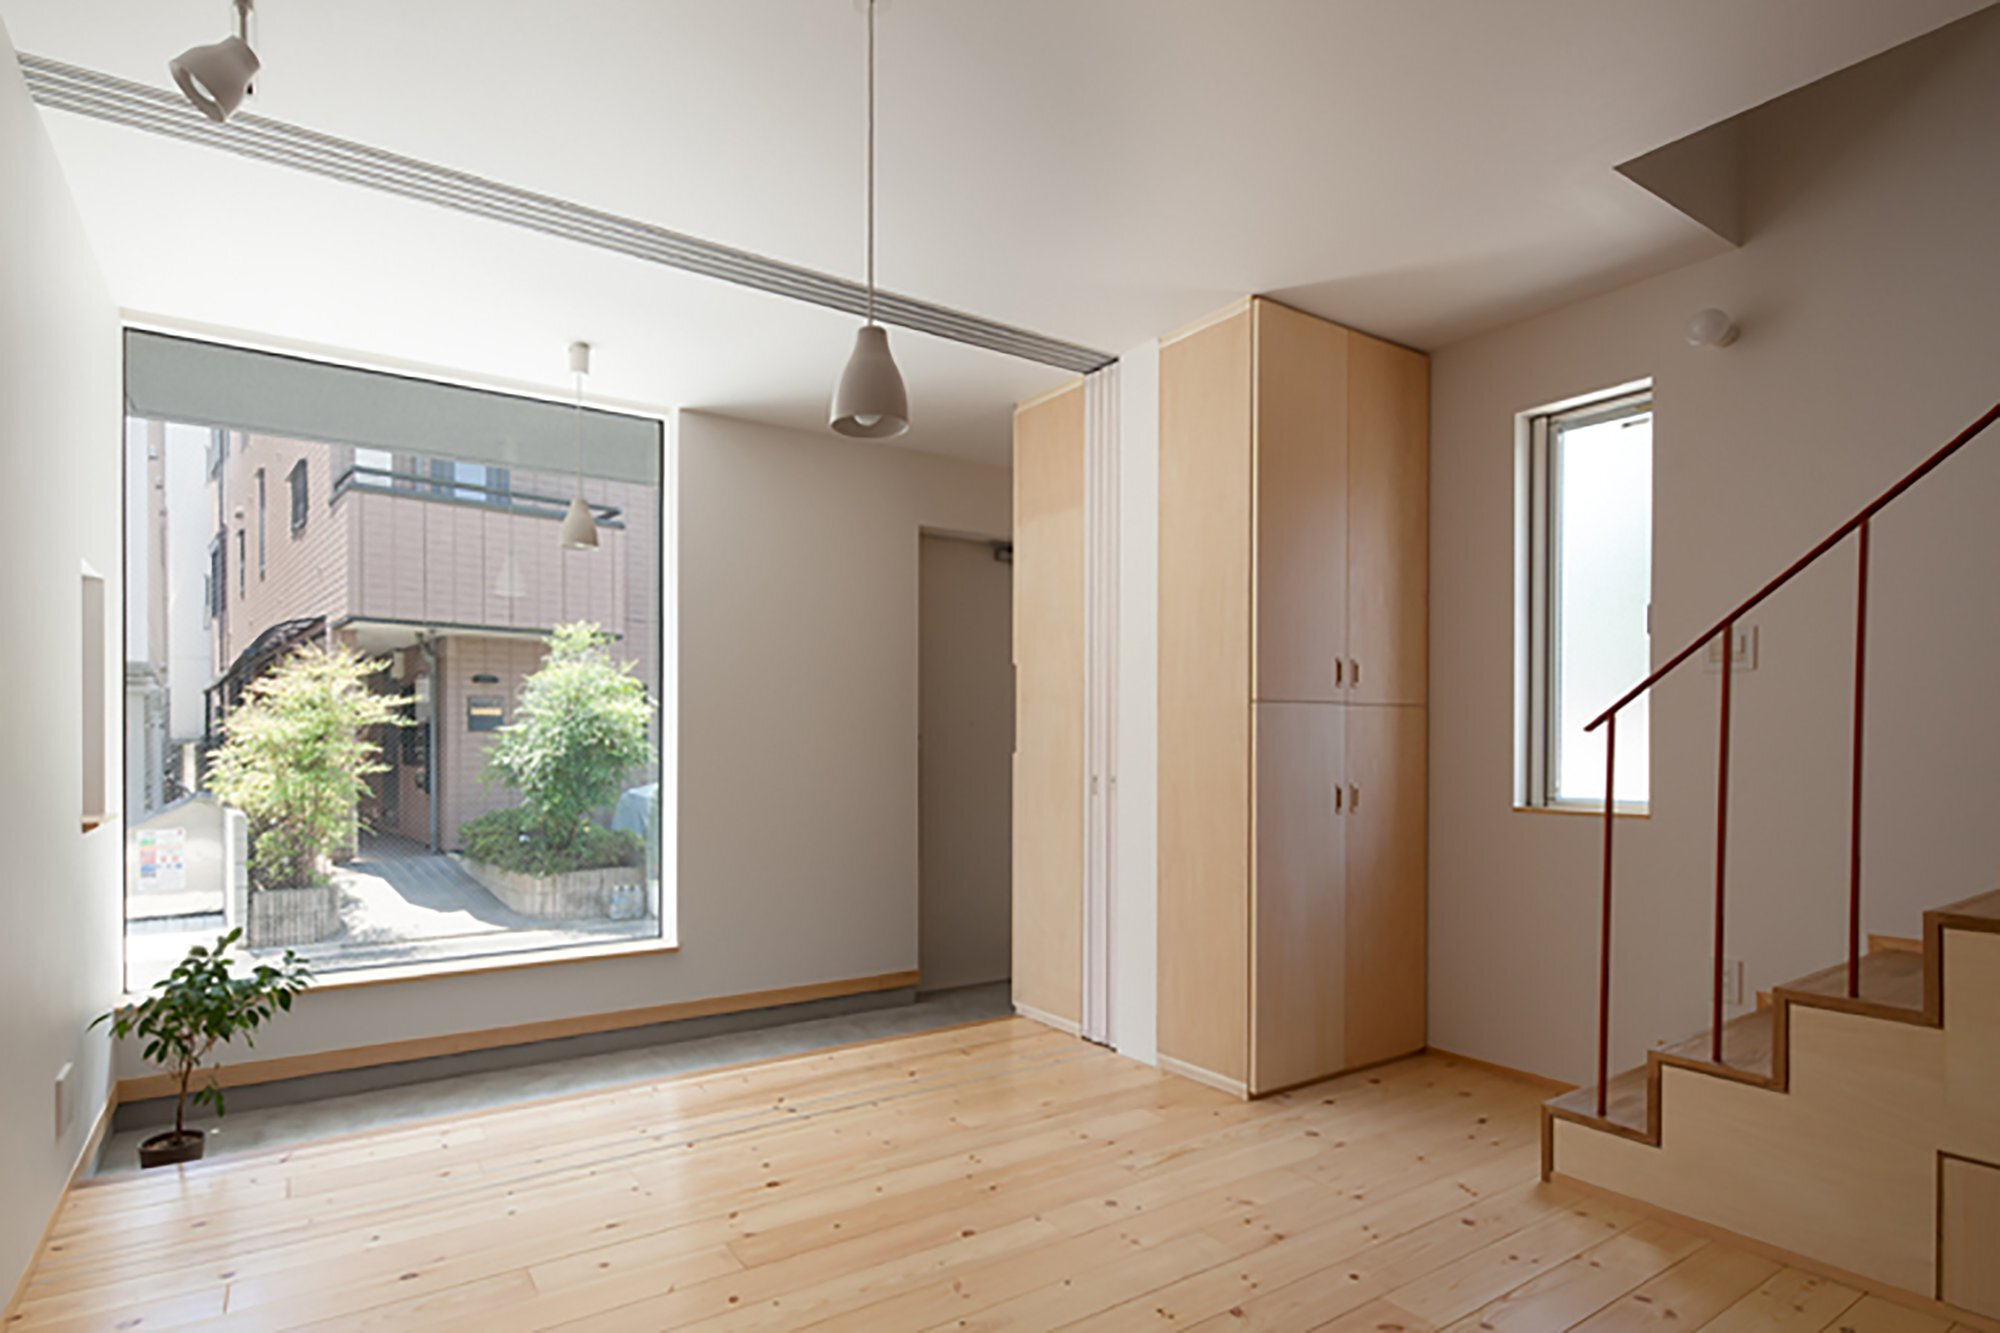 Nakano Fireproof Wooden House - Masashi Ogihara - Nakano, Japan - Small Japanese House - Entrance - Humble Homes